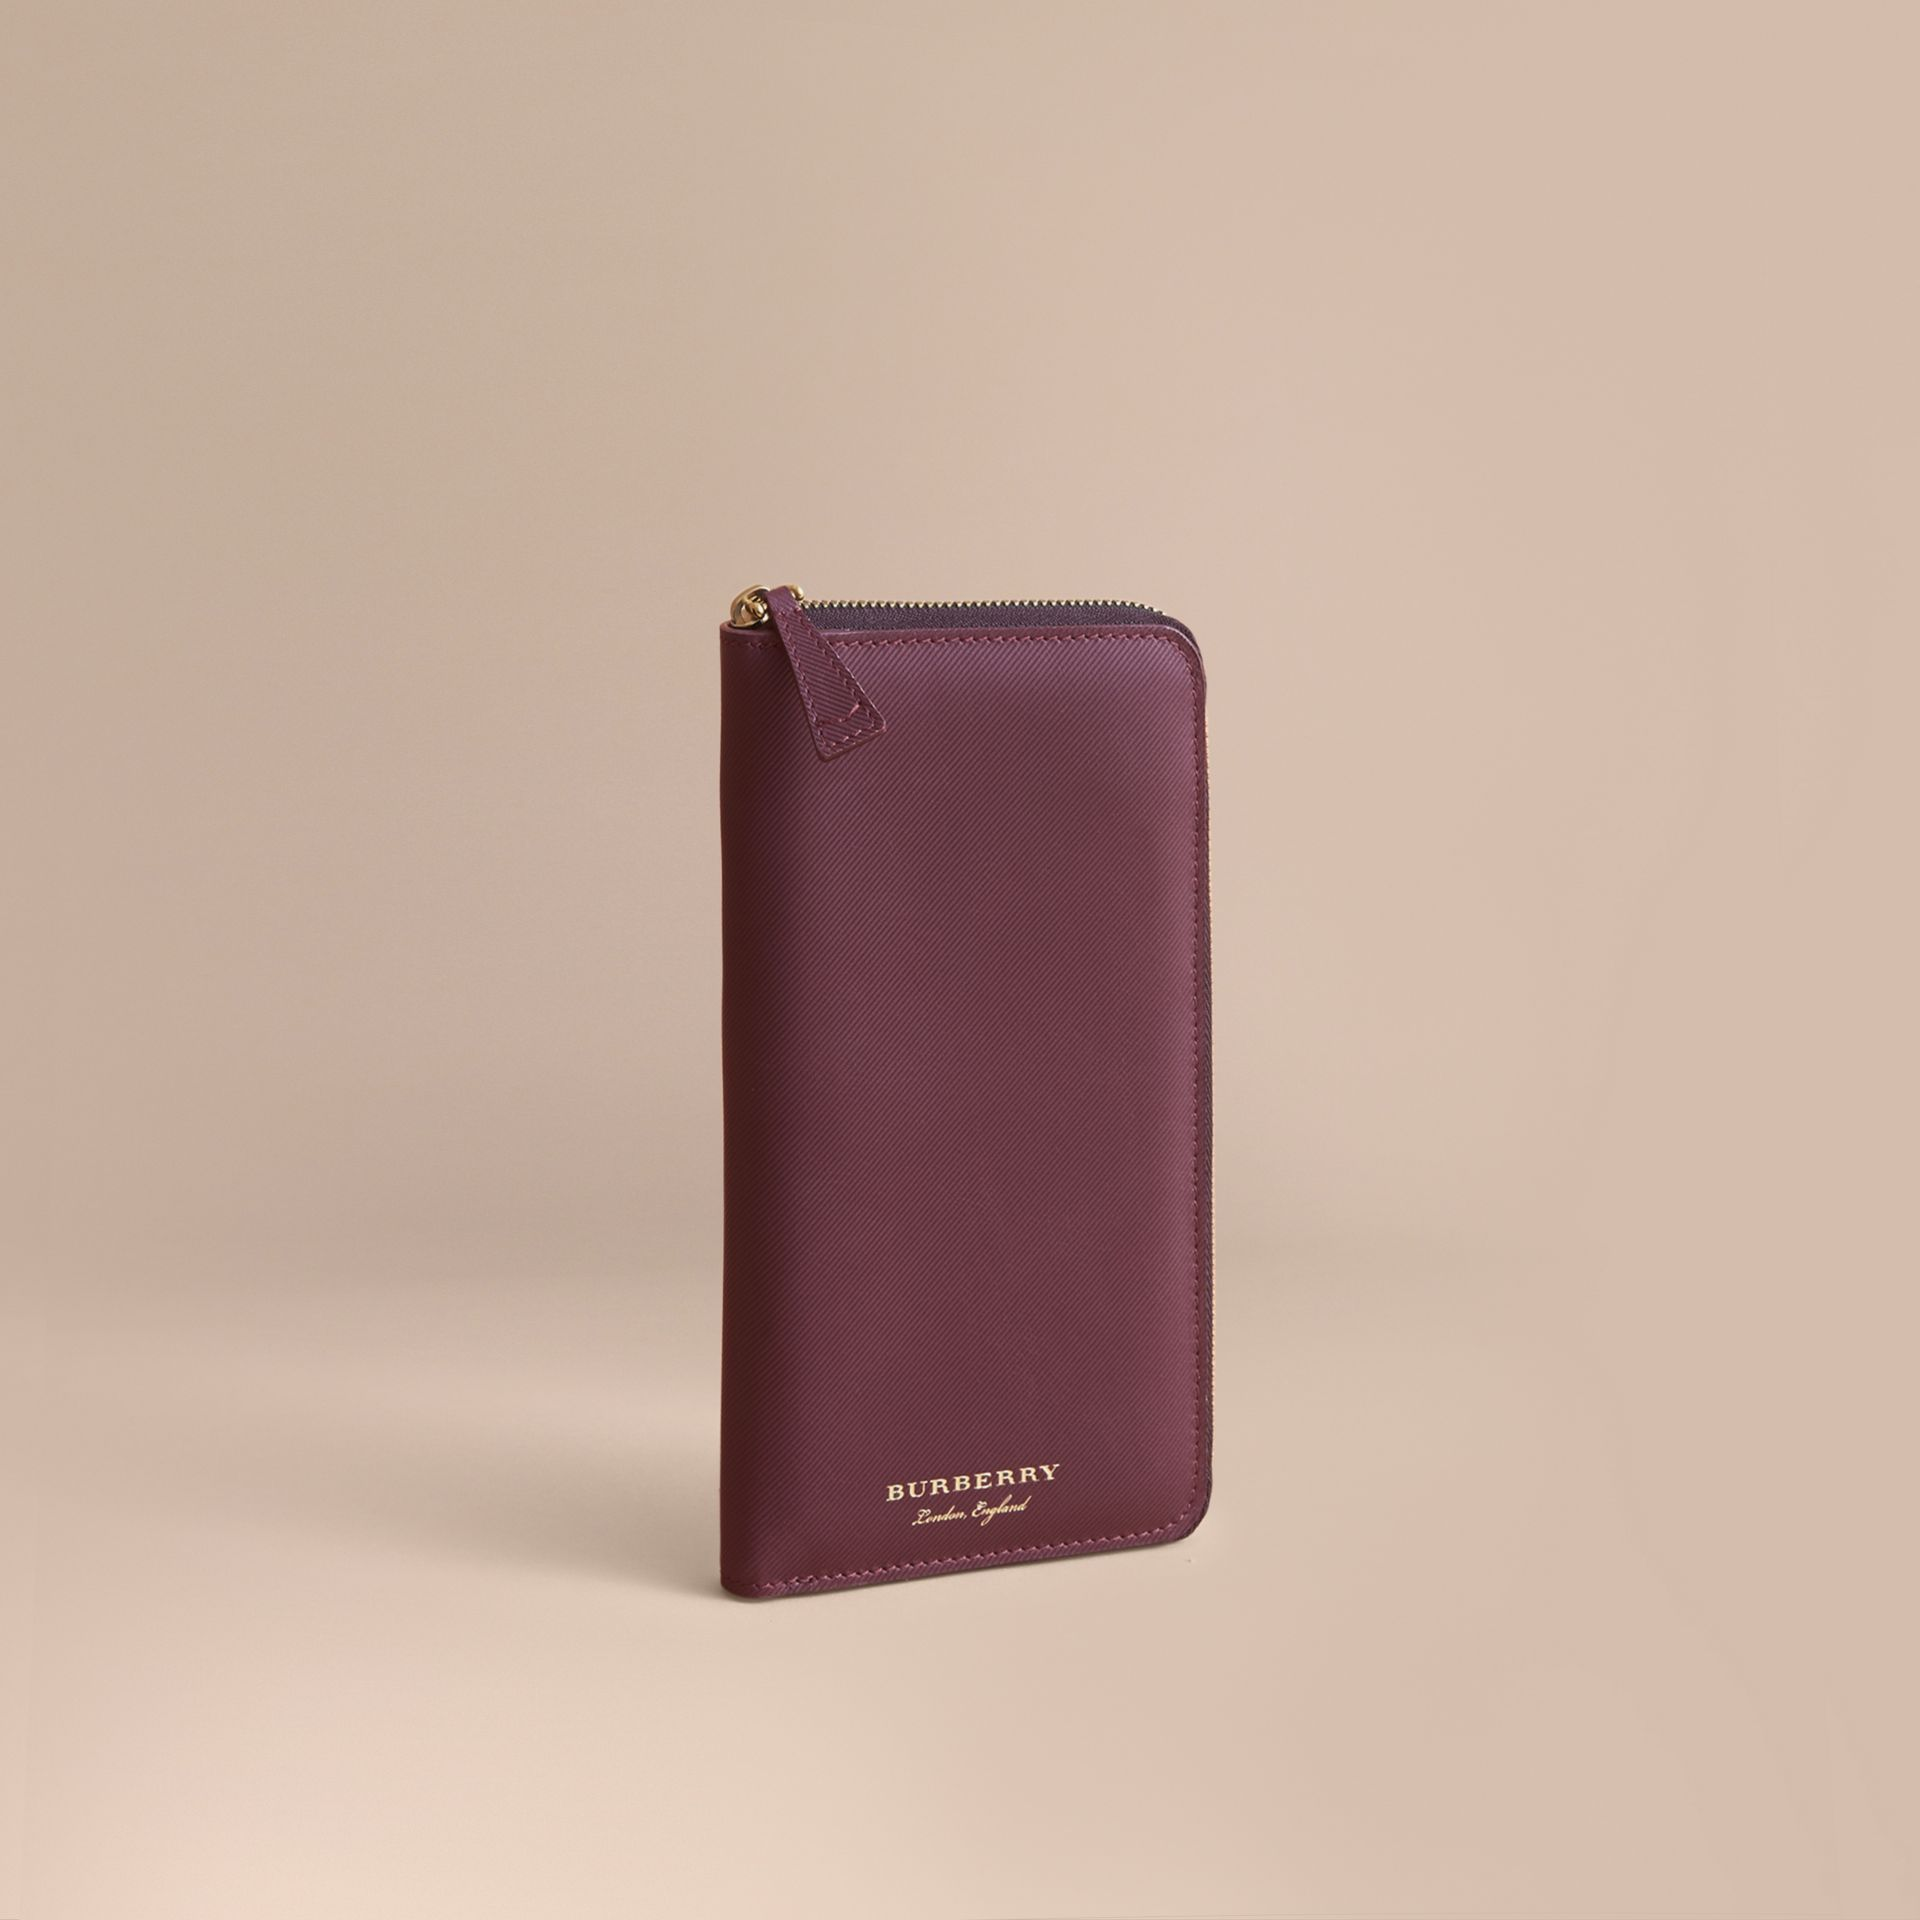 Trench Leather Ziparound Wallet in Wine - Men | Burberry Australia - gallery image 1